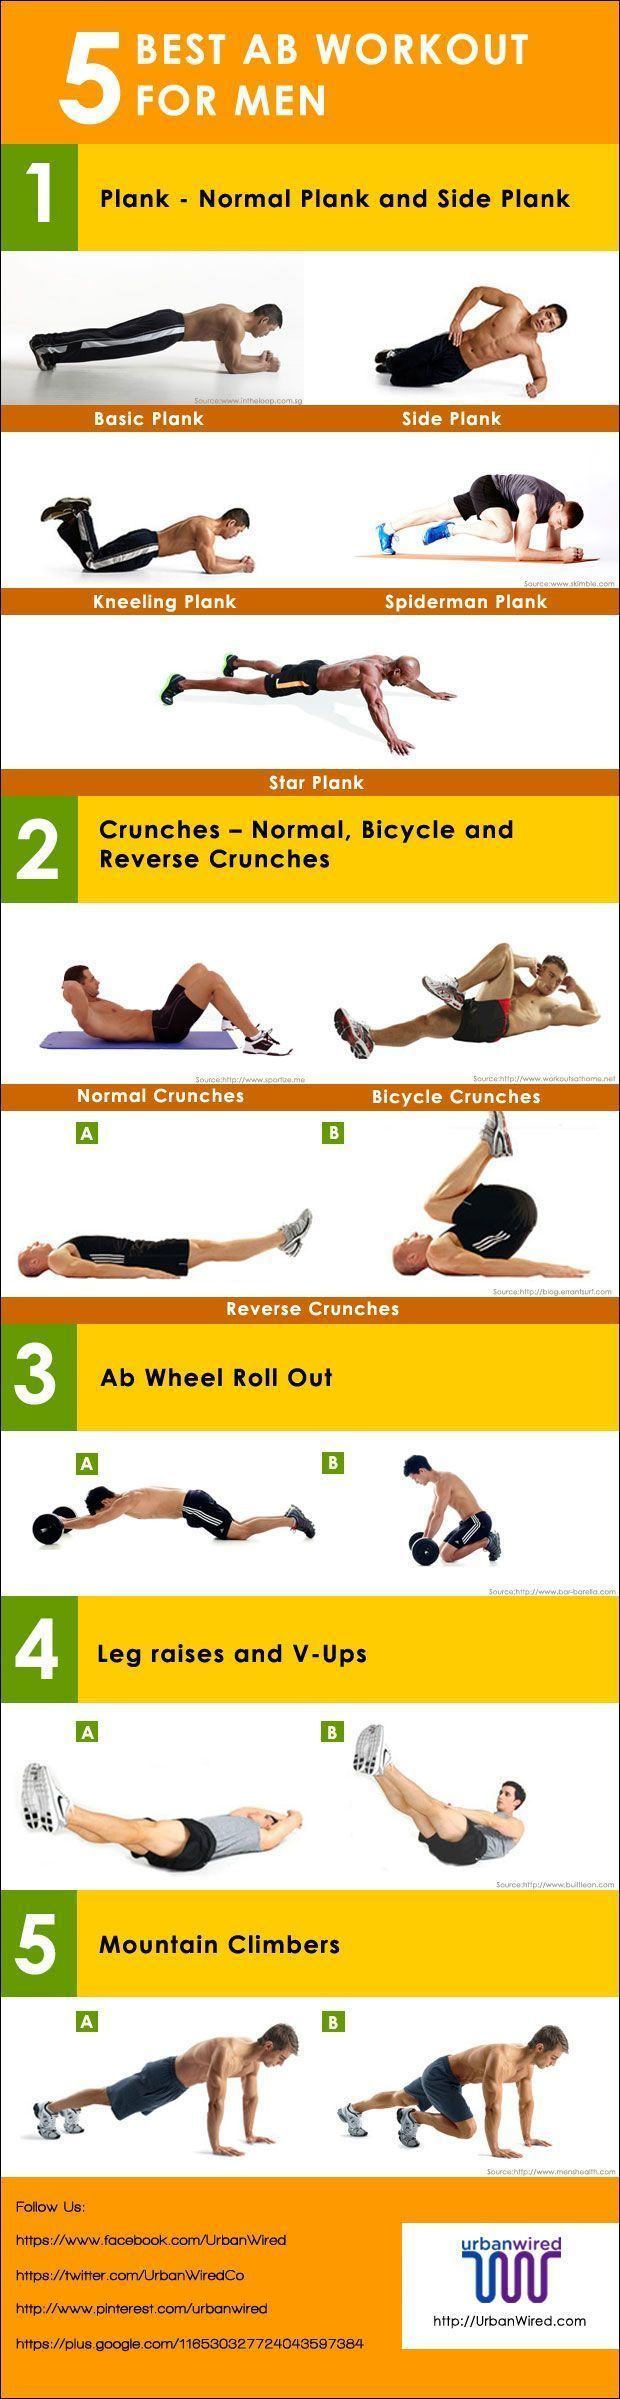 Home Workout Plan For Men best 20+ ab workouts for men ideas on pinterest | ab workout men